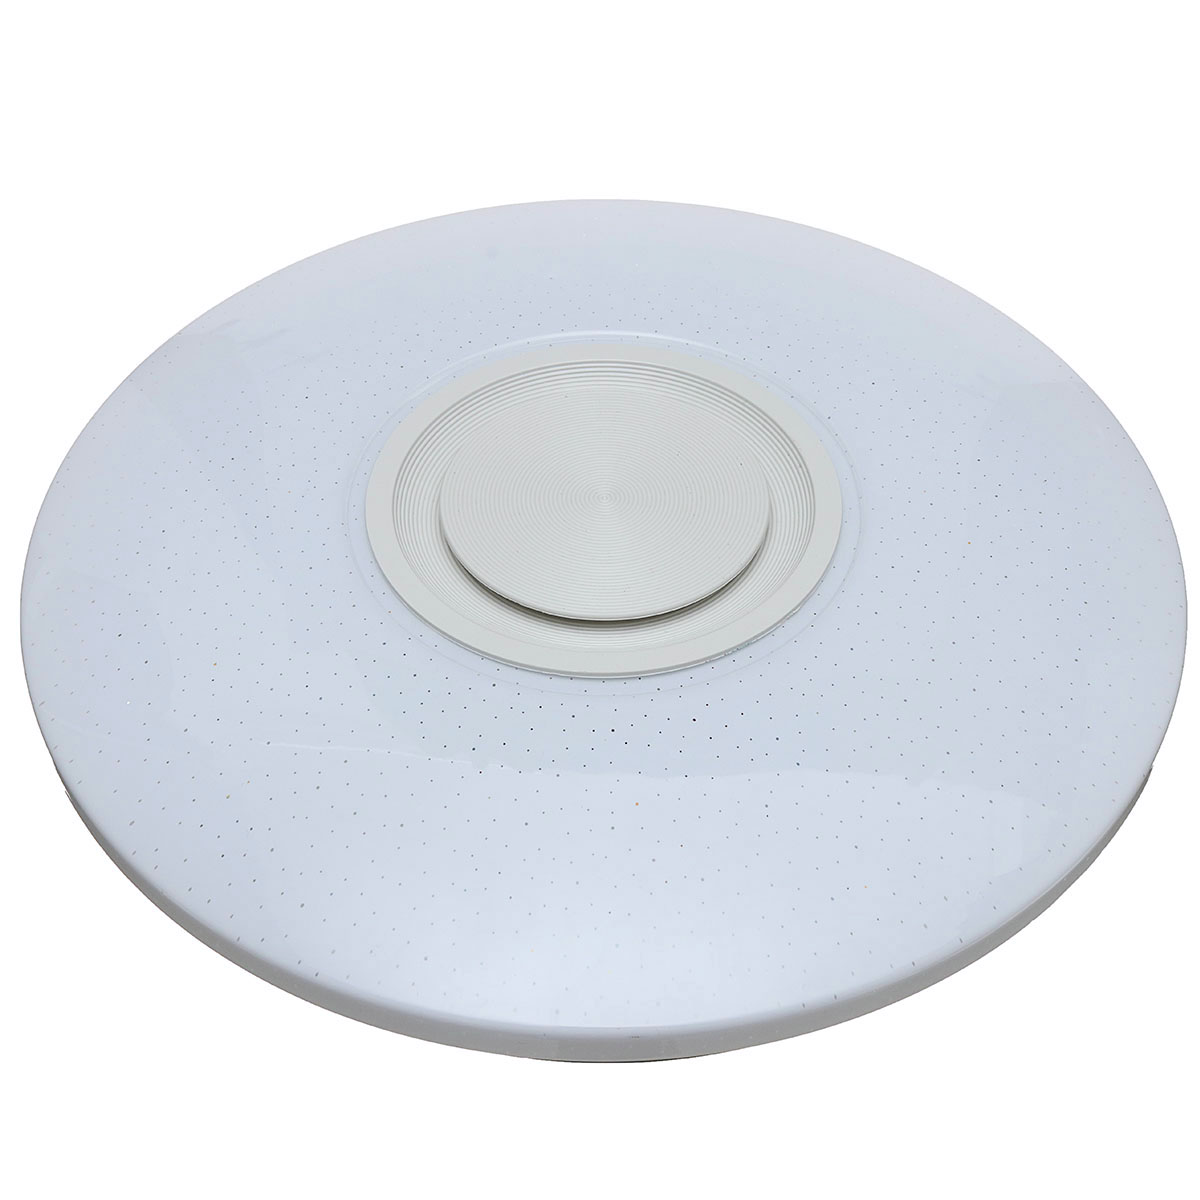 HTB1hQNeavvsK1Rjy0Fiq6zwtXXaM Smuxi 60W 102LED bluetooth LED Music Ceiling Lights Starry APP/Remote Control Dimming RGB bluetooth LED Lamp AC180-240V Fixtures